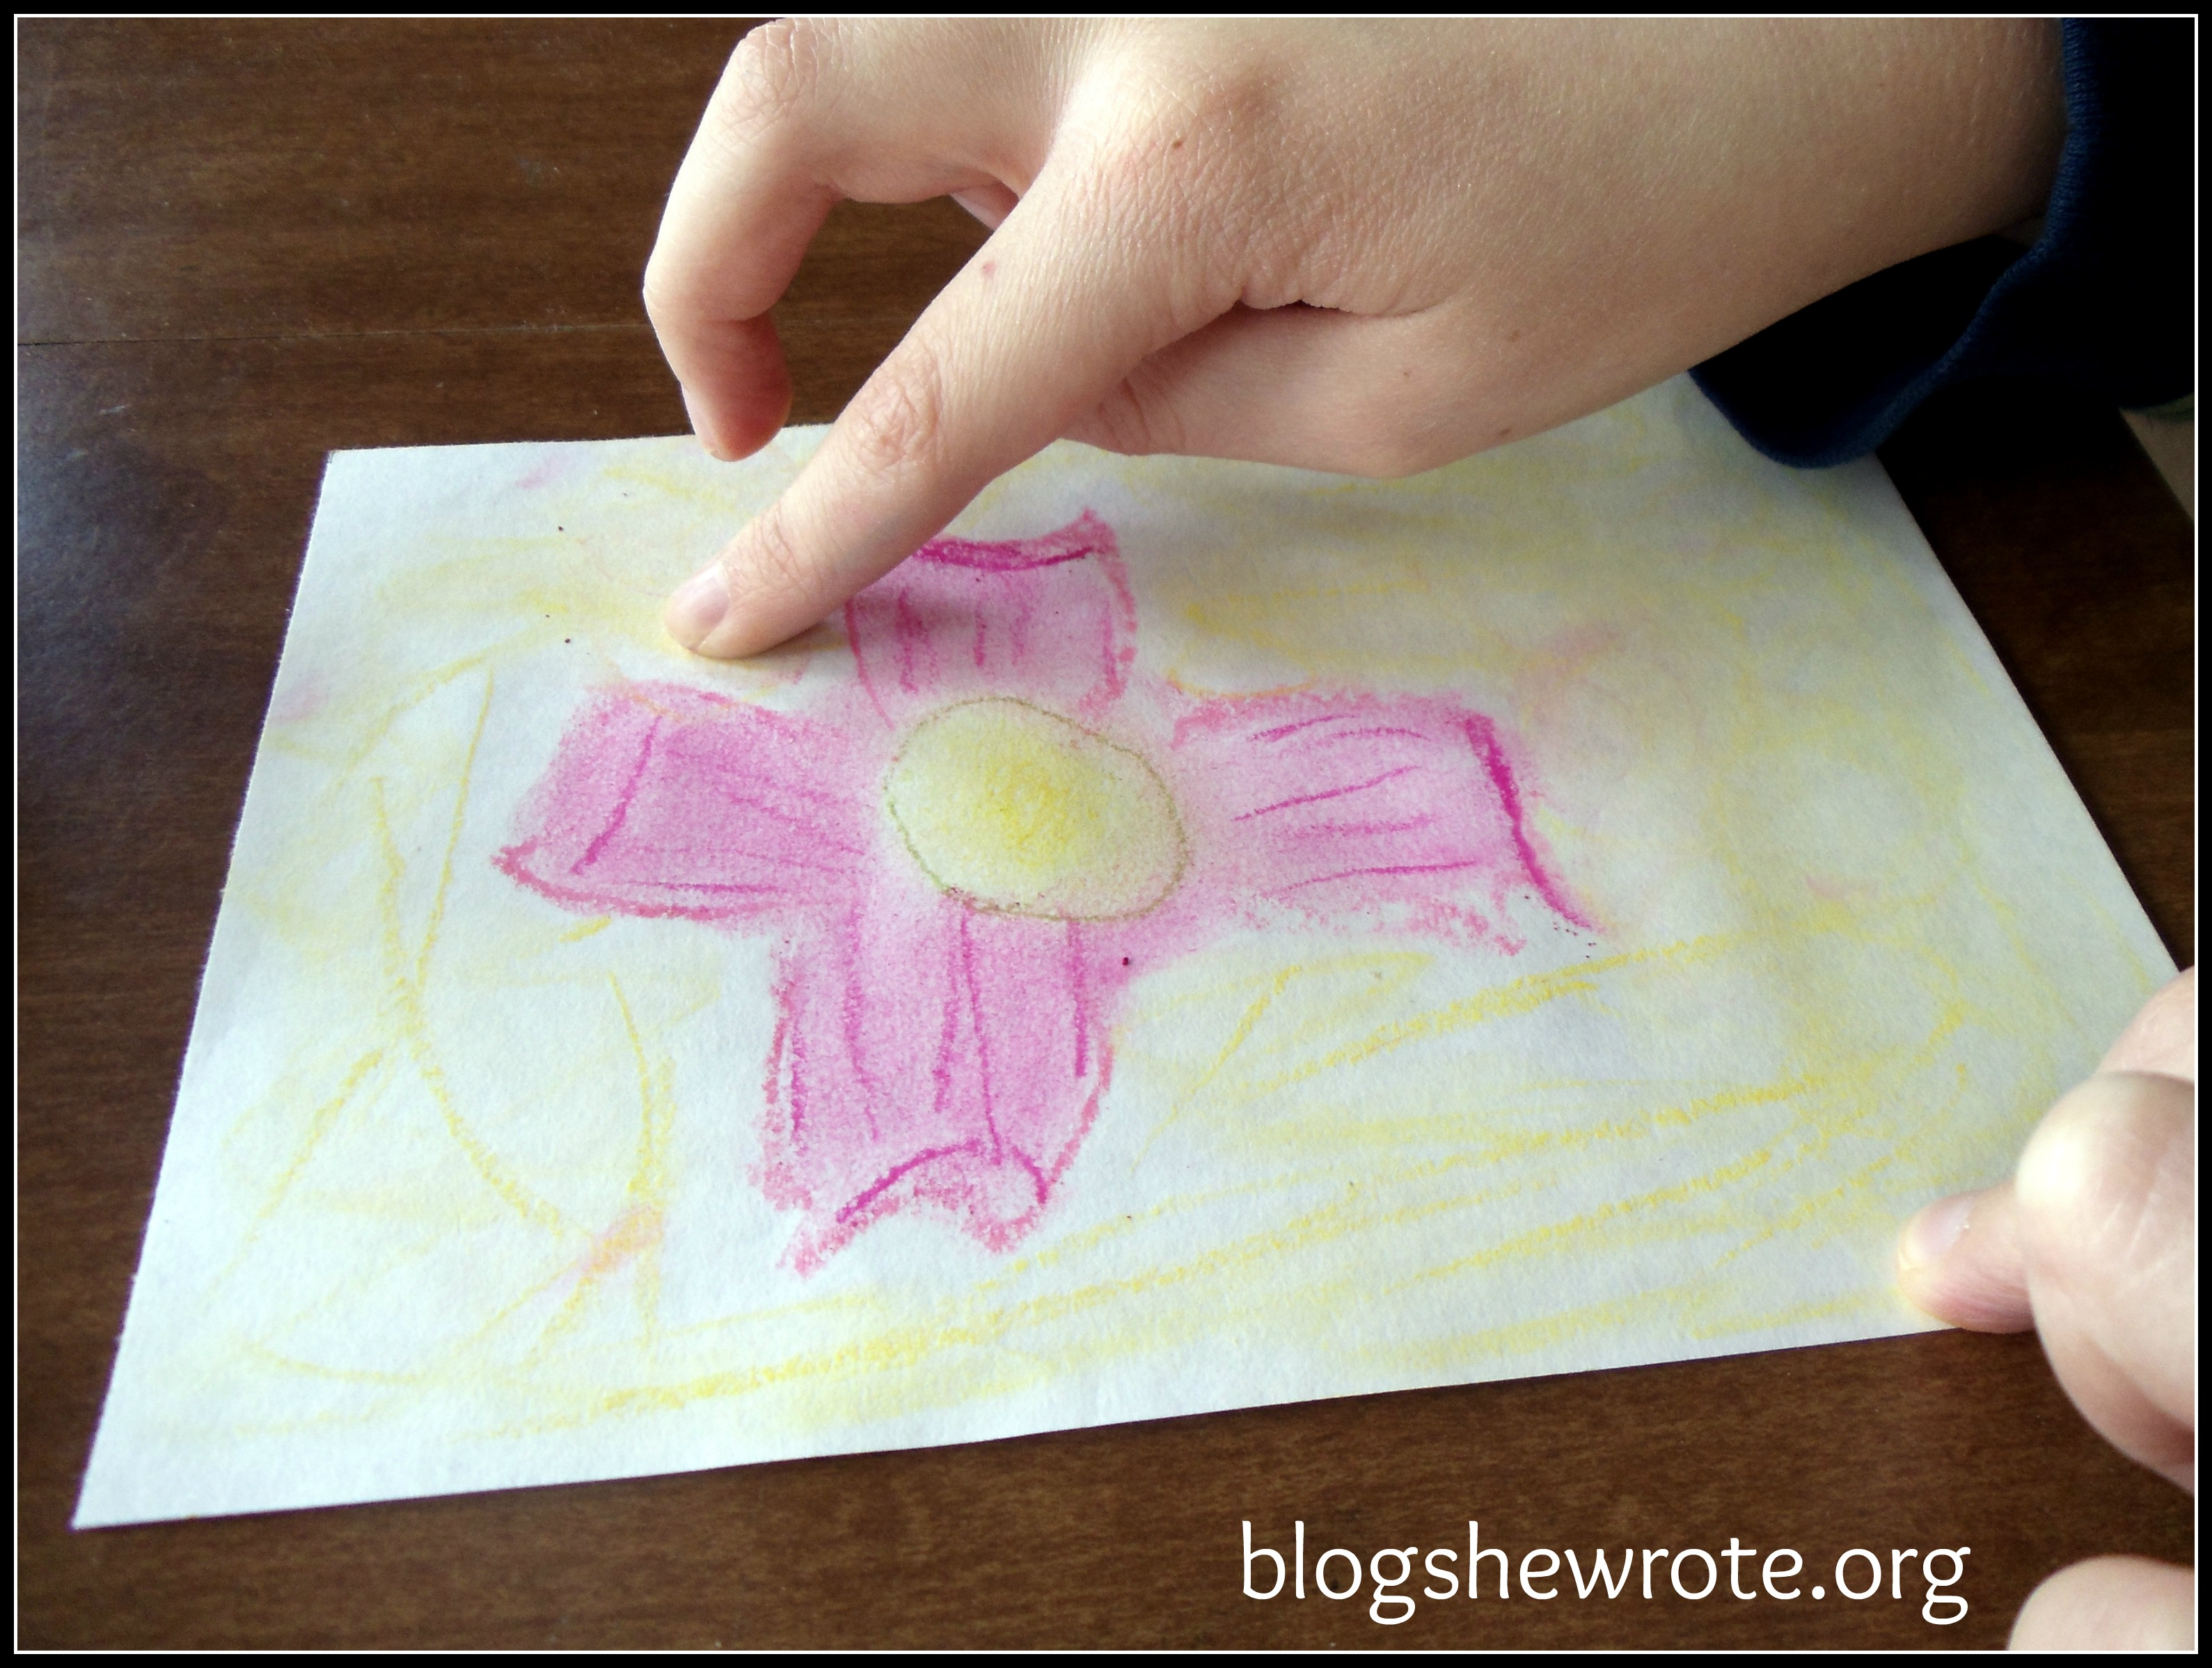 Blog She Wrote: Dogwood Blossoms in Chalk